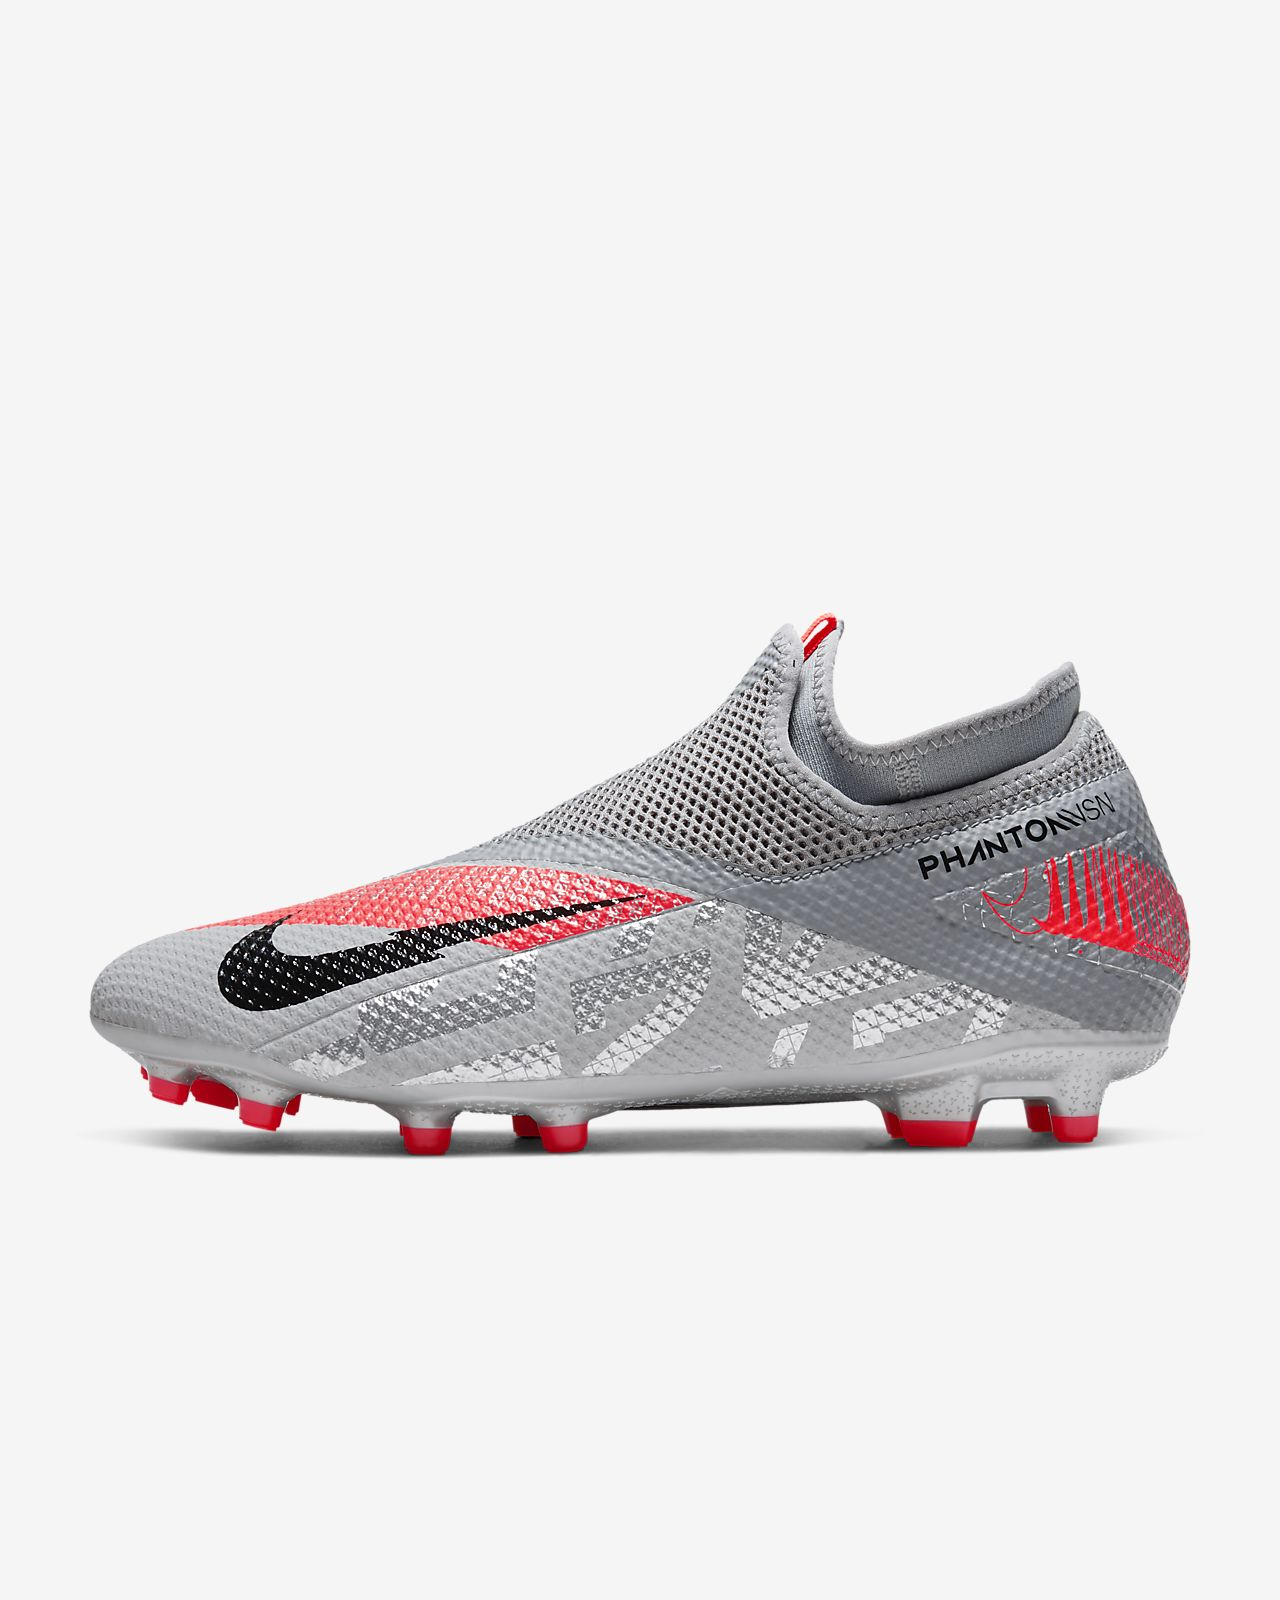 Nike Phantom Vision 2 Academy Dynamic Fit MG Multi-Ground Soccer Cleat